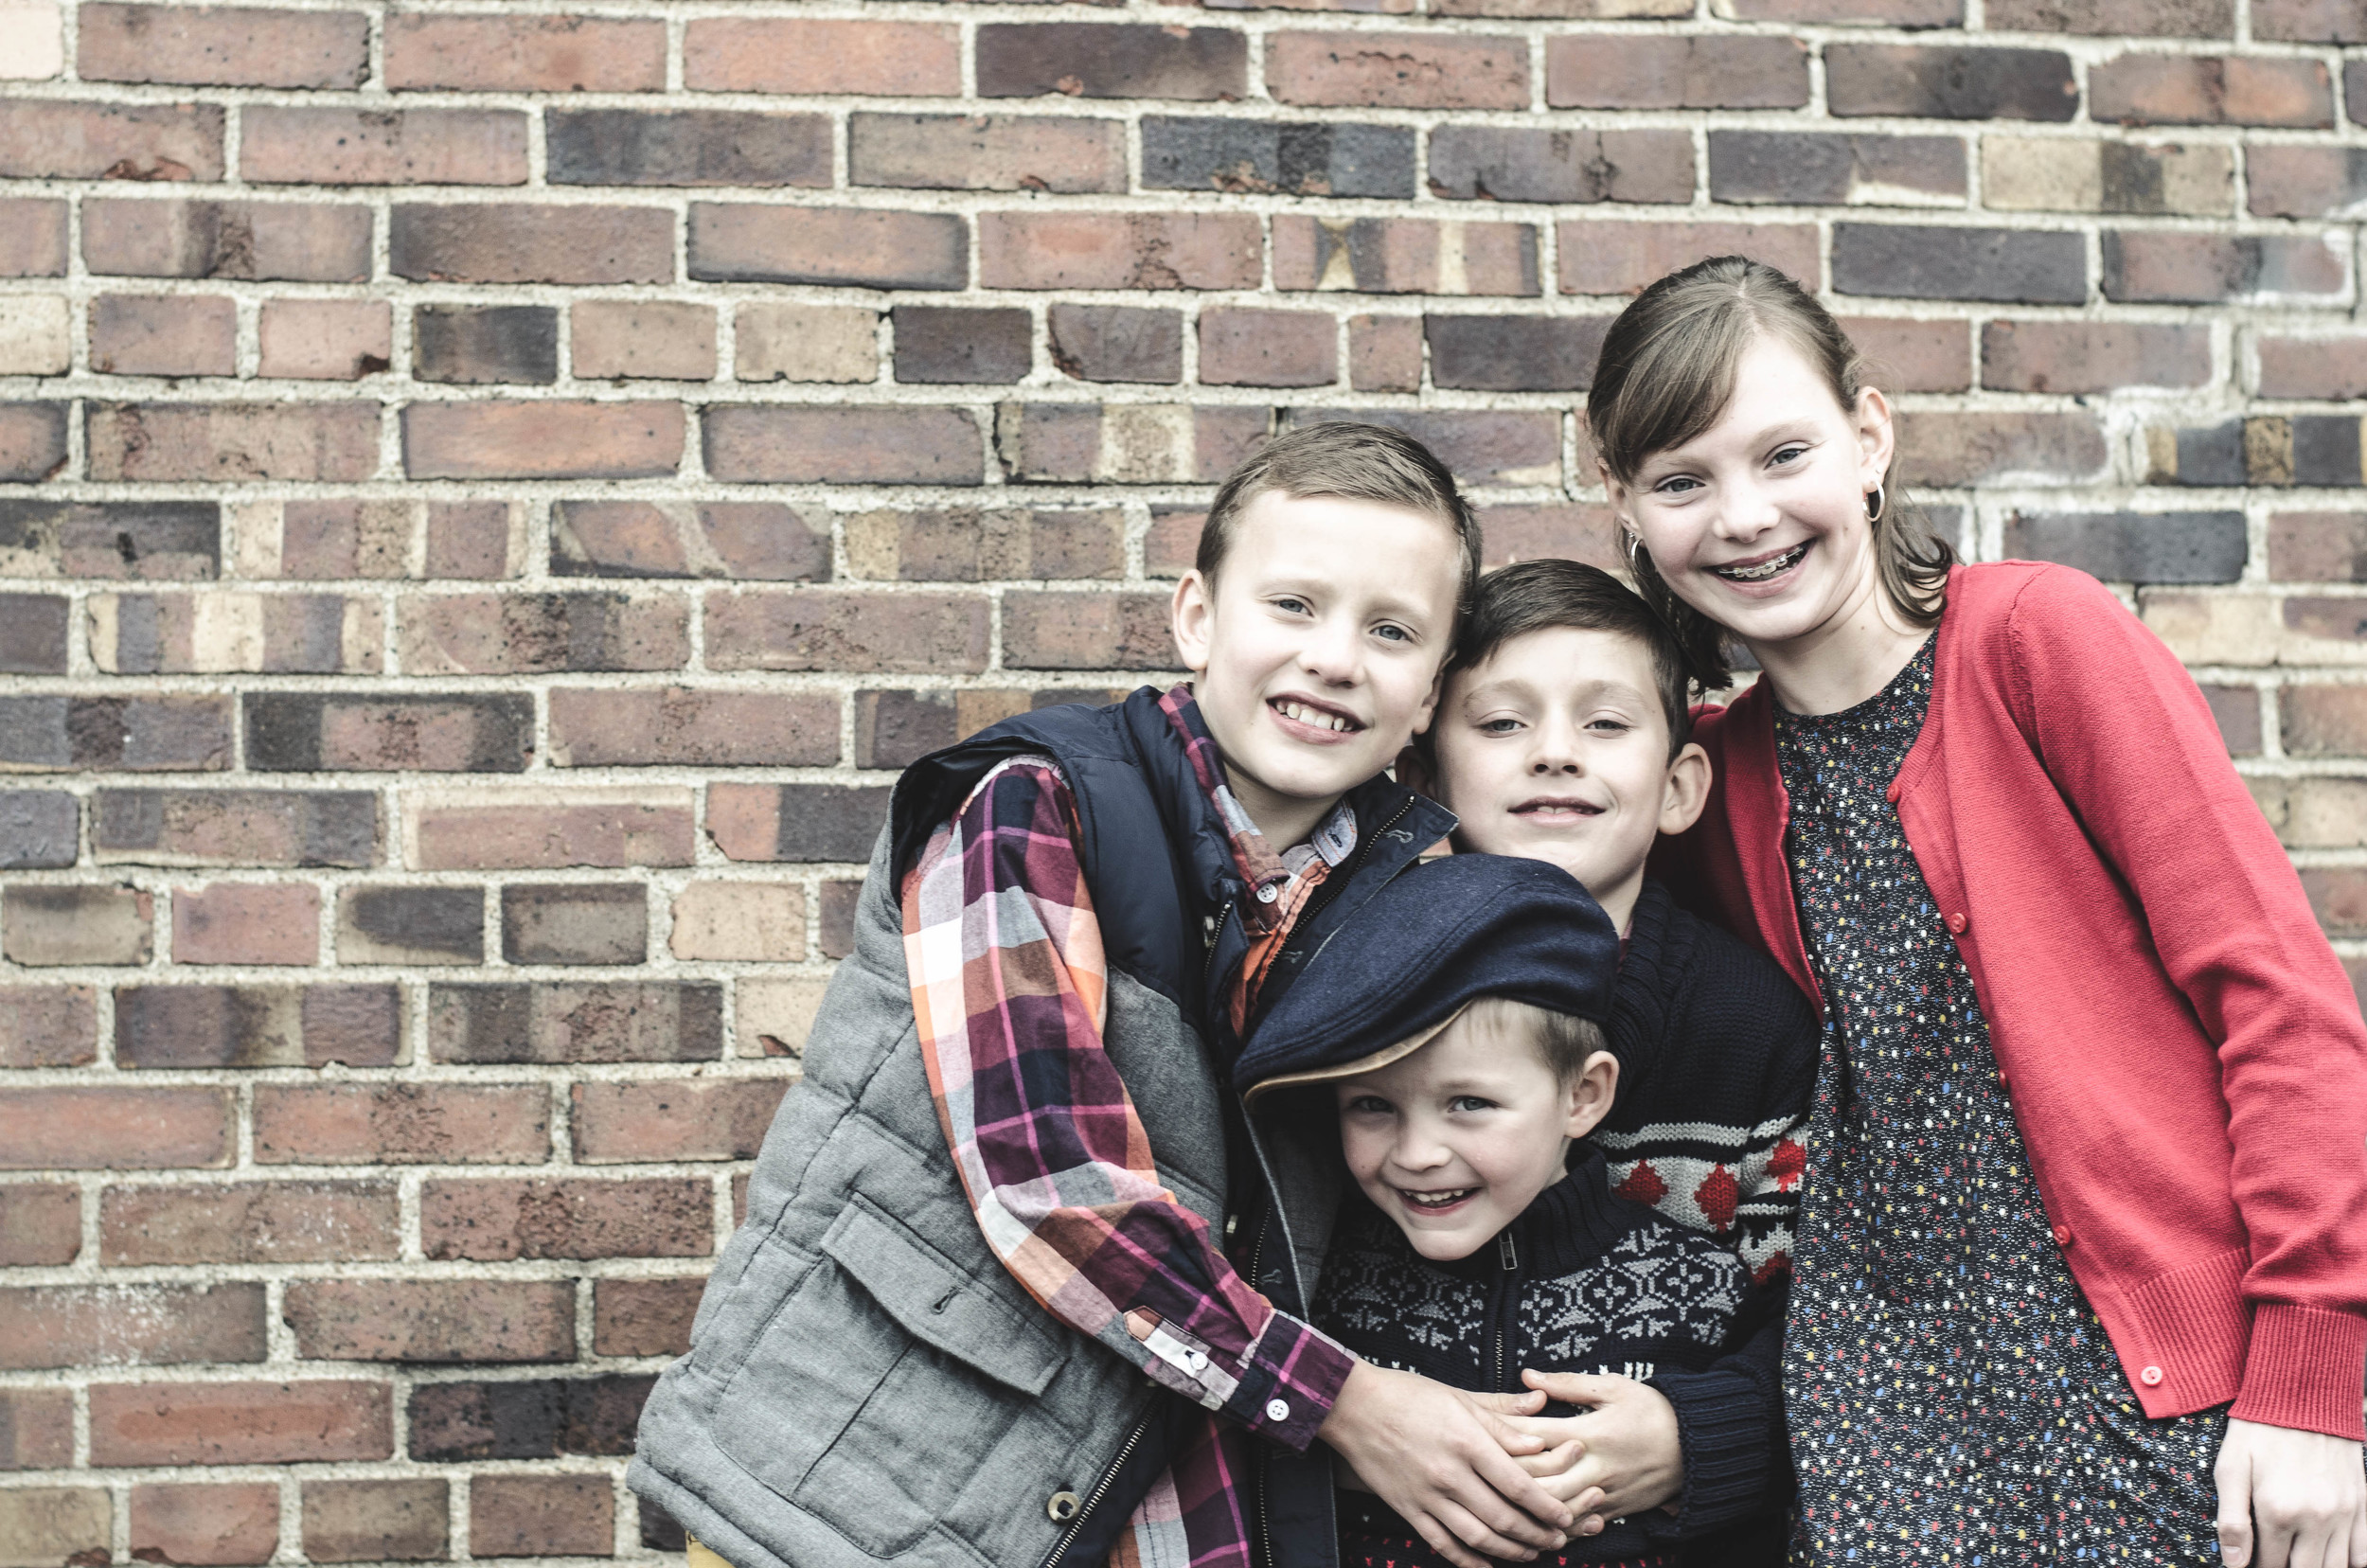 desmoinesfamily (4 of 50).jpg